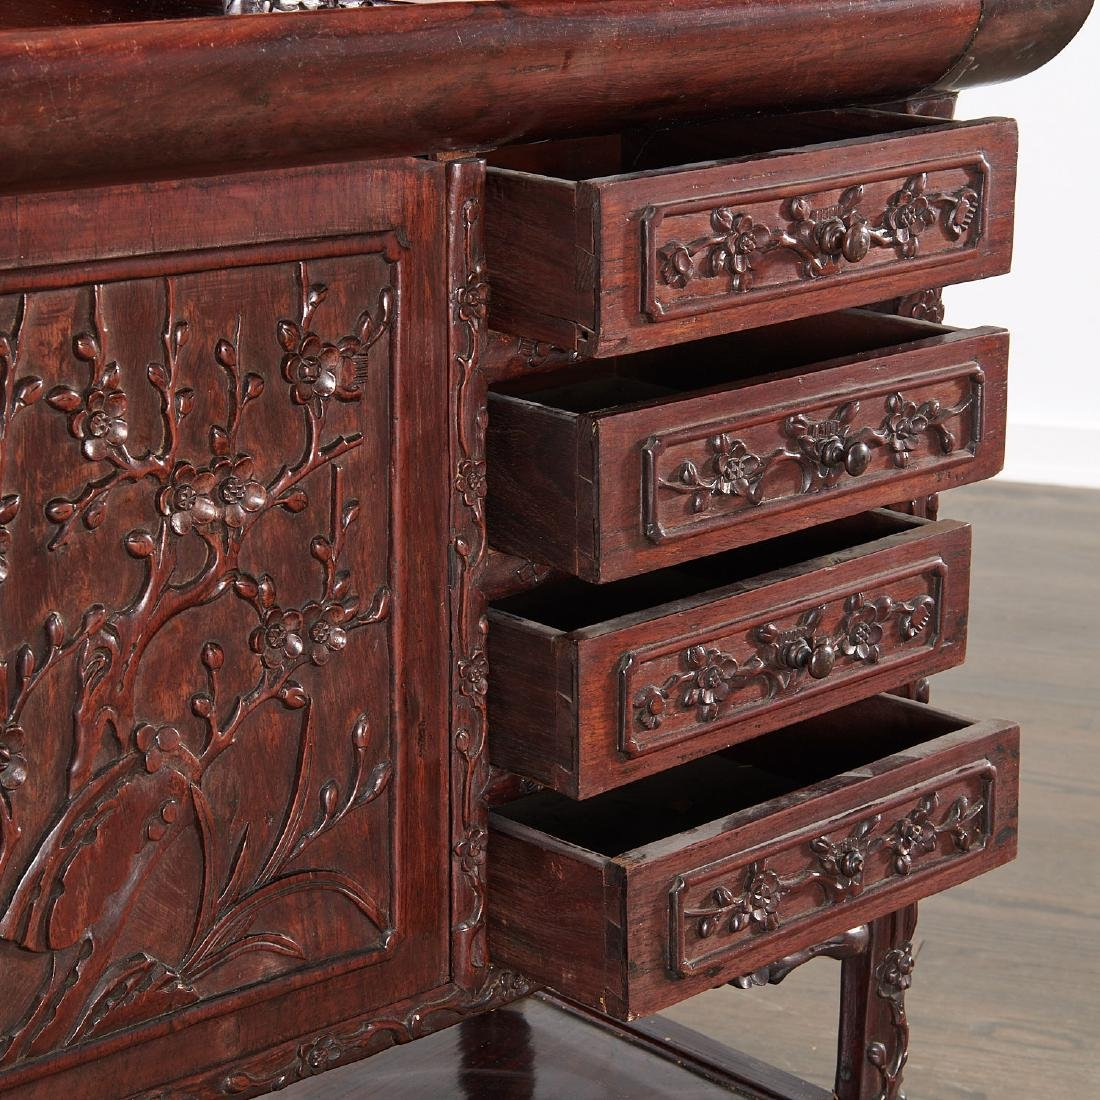 Fine Chinese Export carved hardwood two-part desk - 5